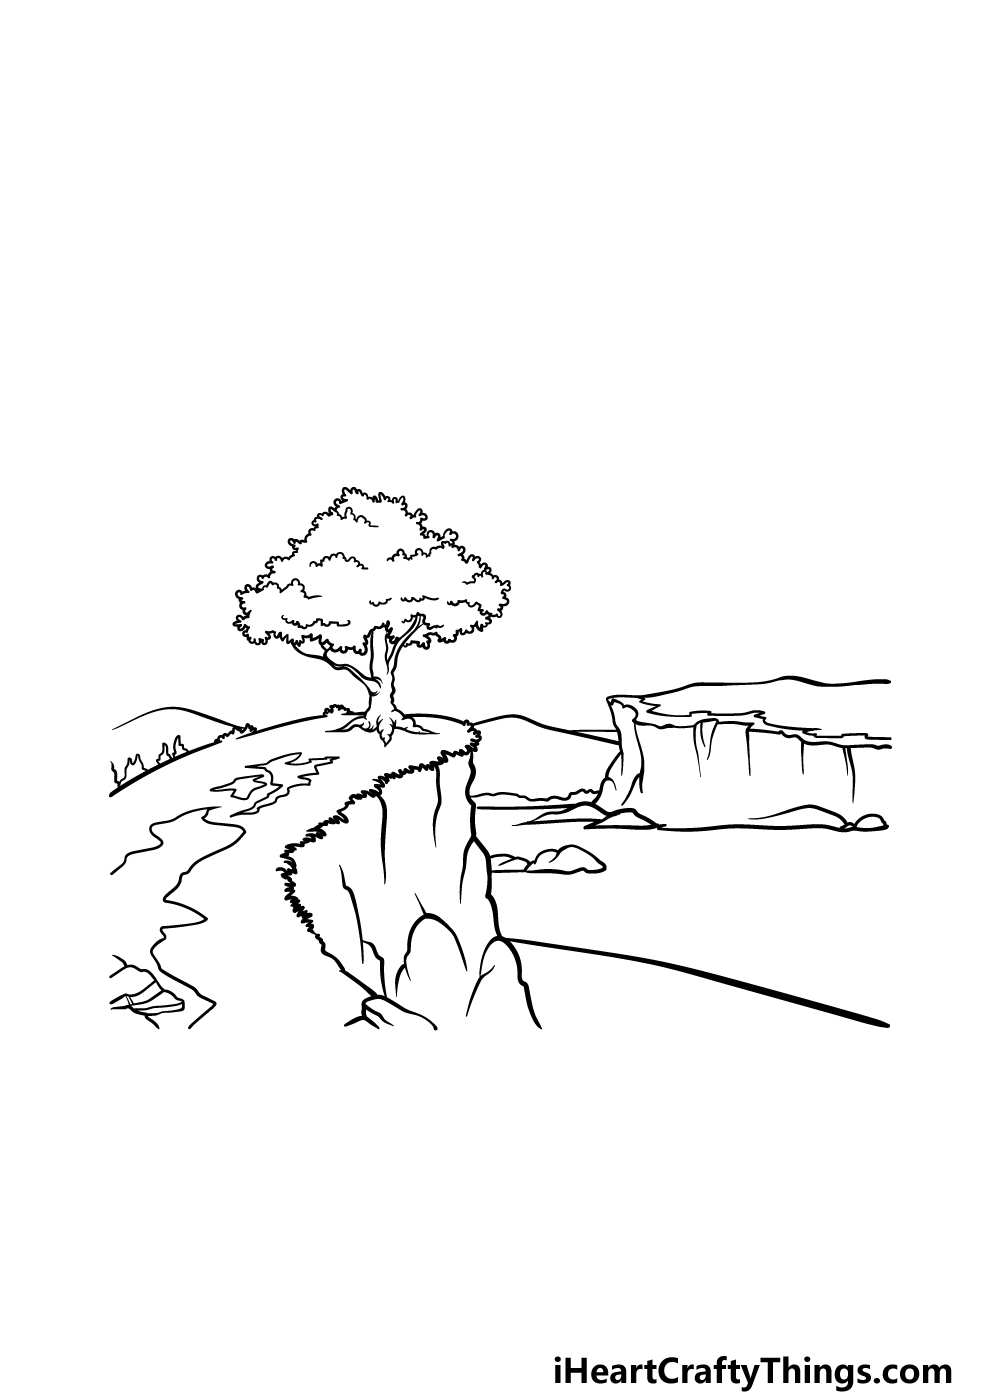 drawing a cliff step 7